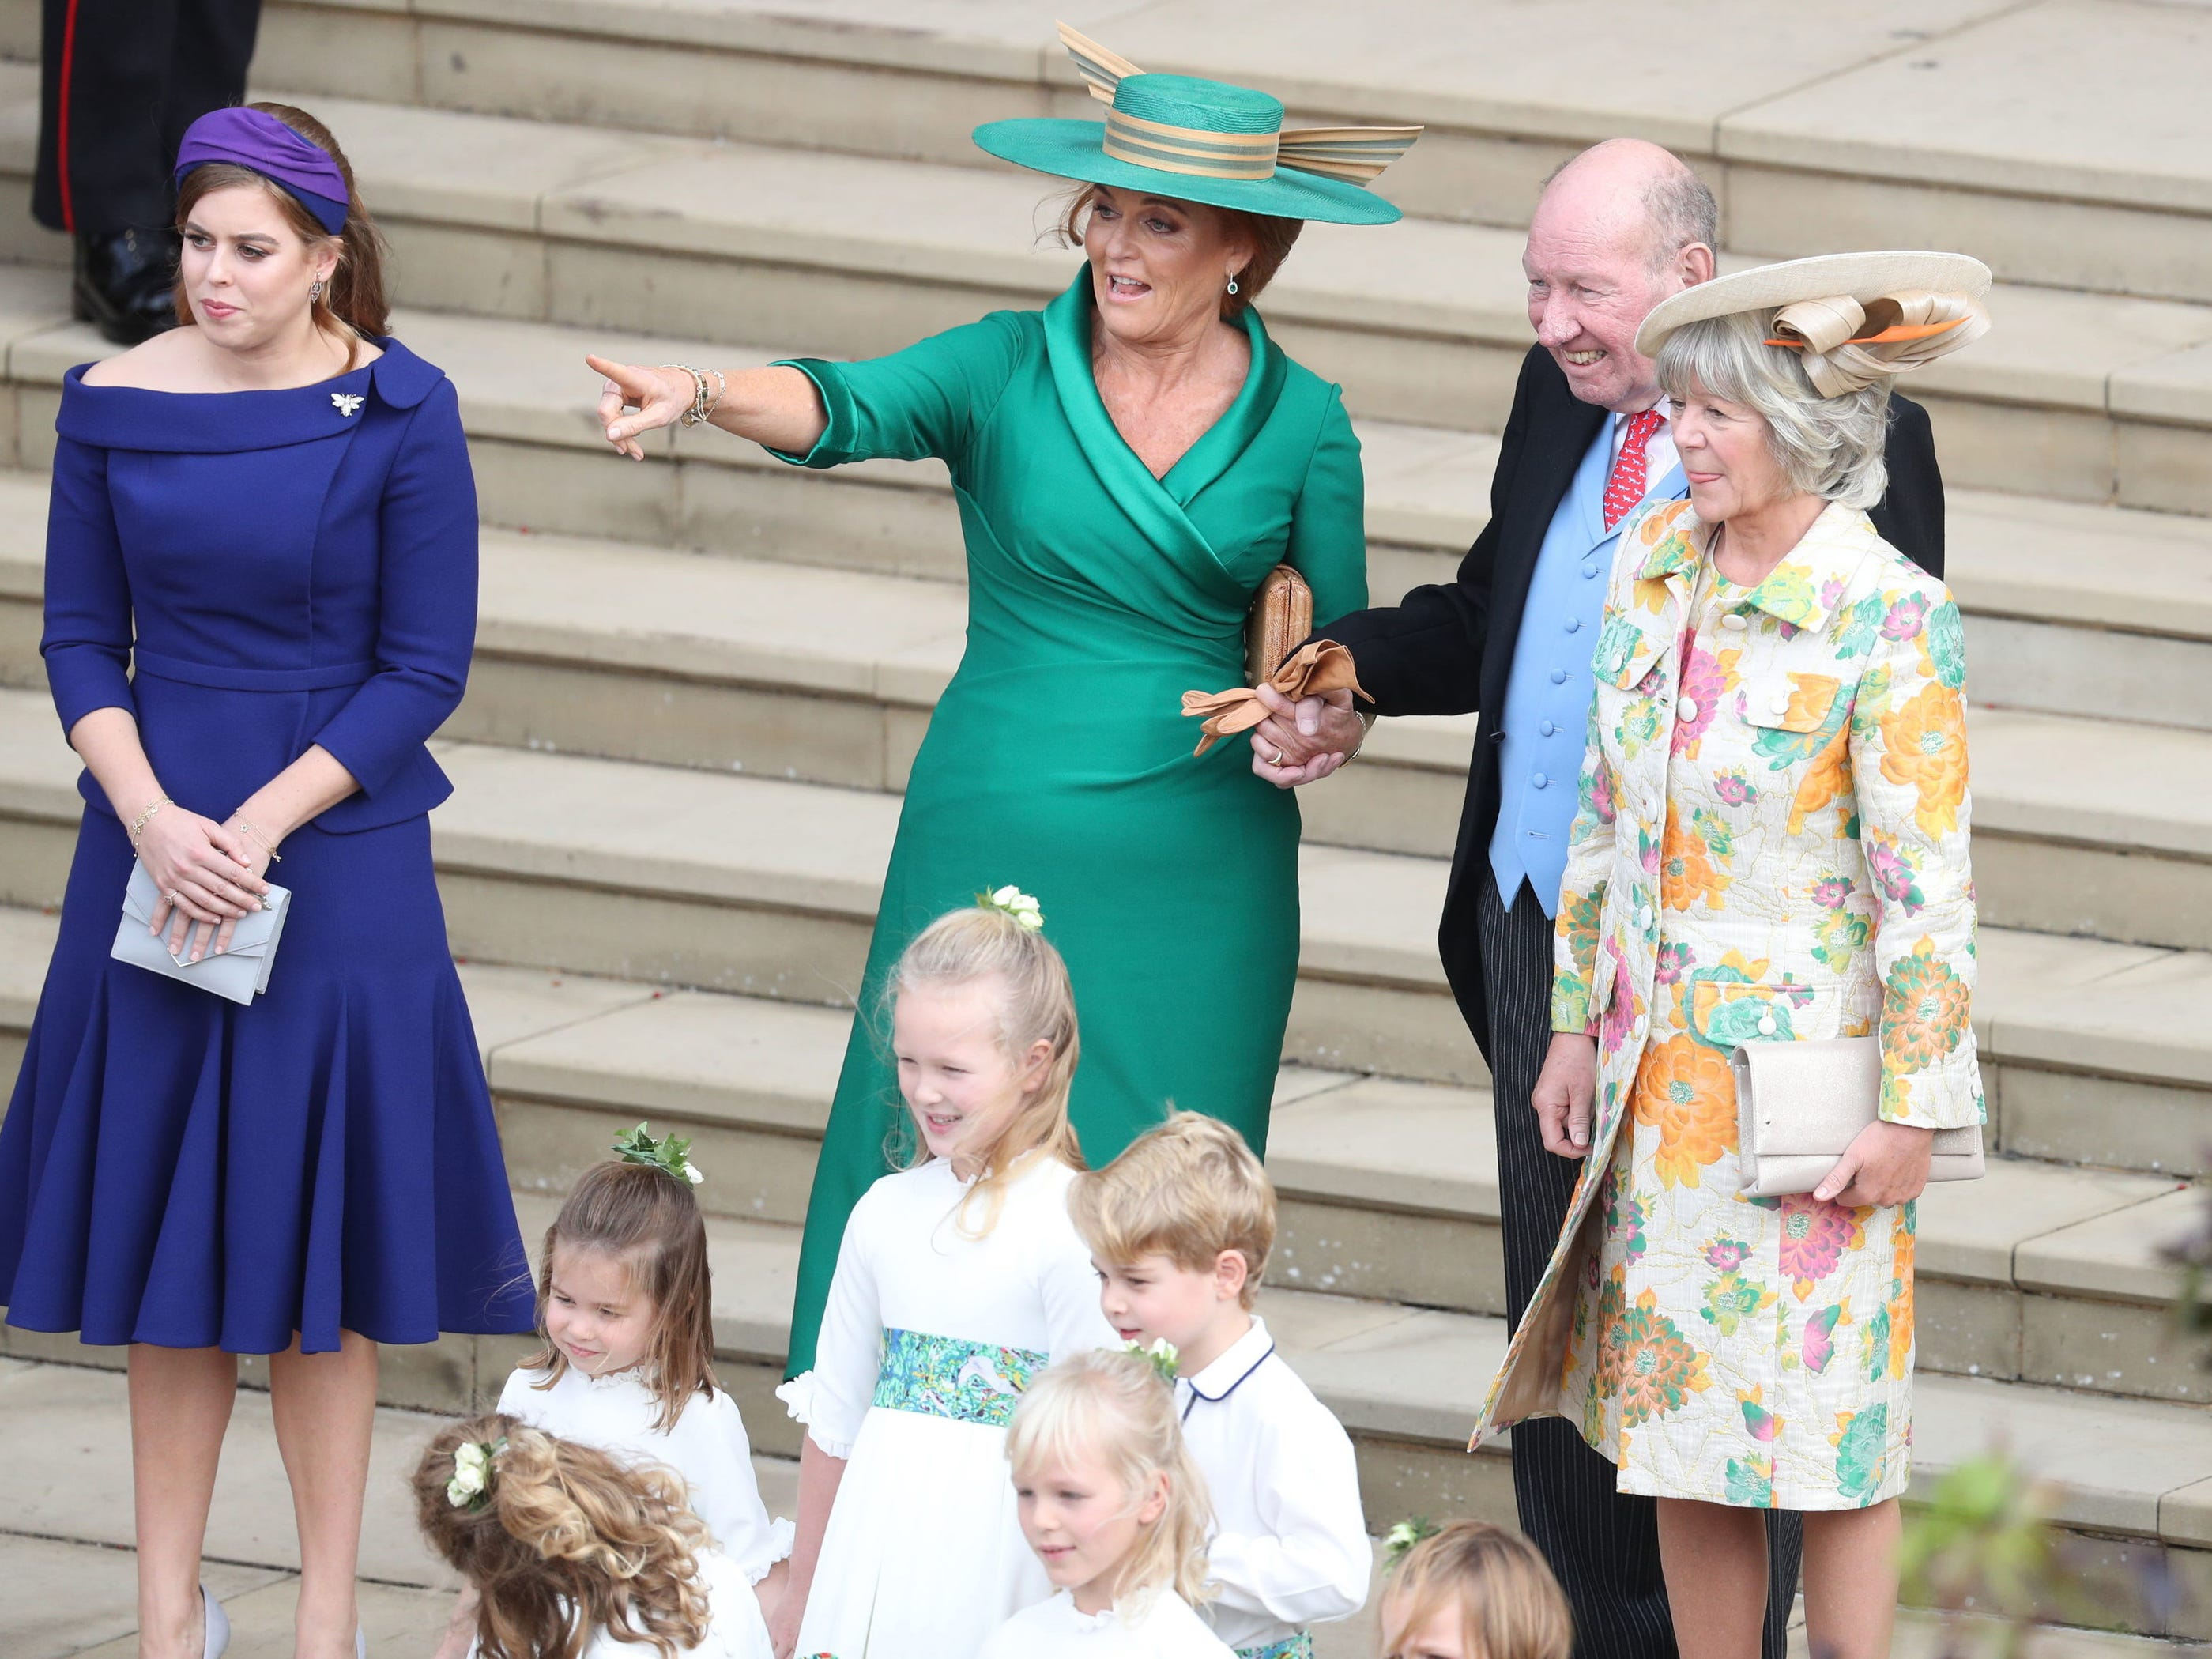 Princess Beatrice of York, Sarah Ferguson, George Brooksbank and Nicola Brooksbank.